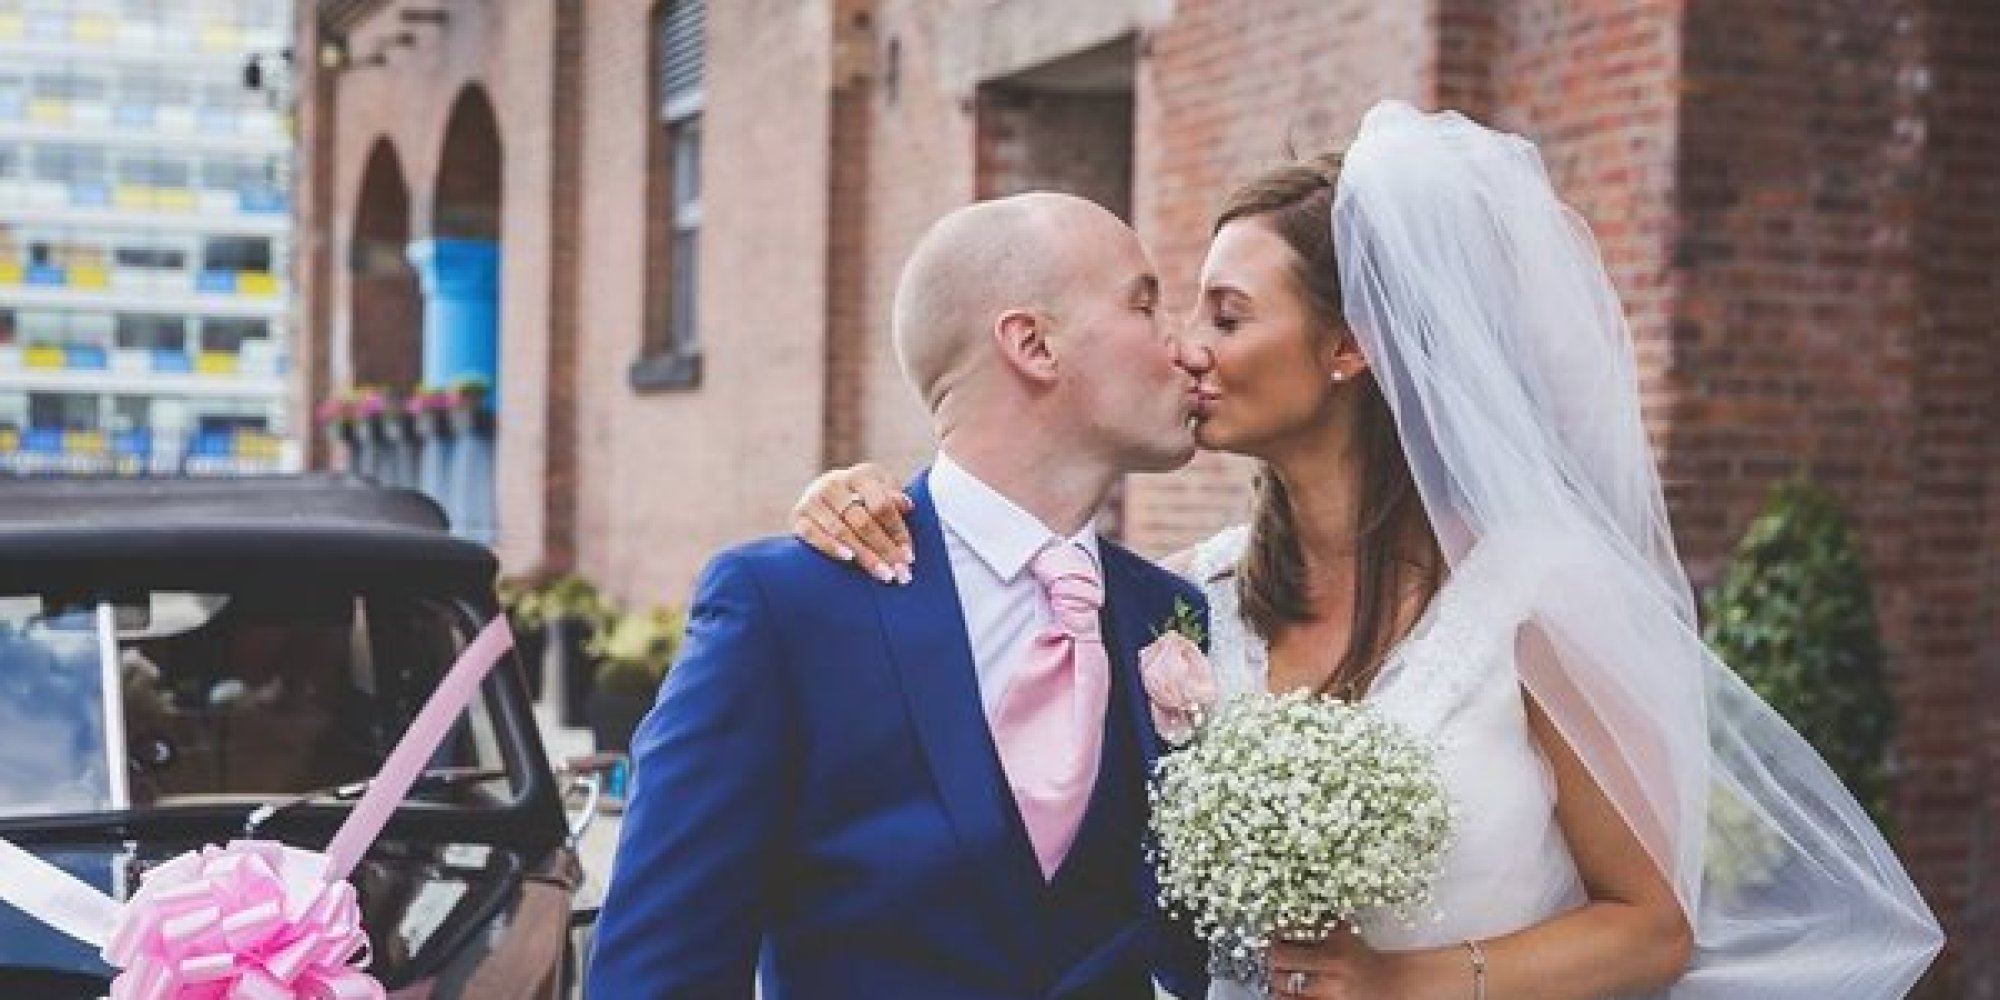 Strangers Pay For Couple's Dream Wedding After Groom